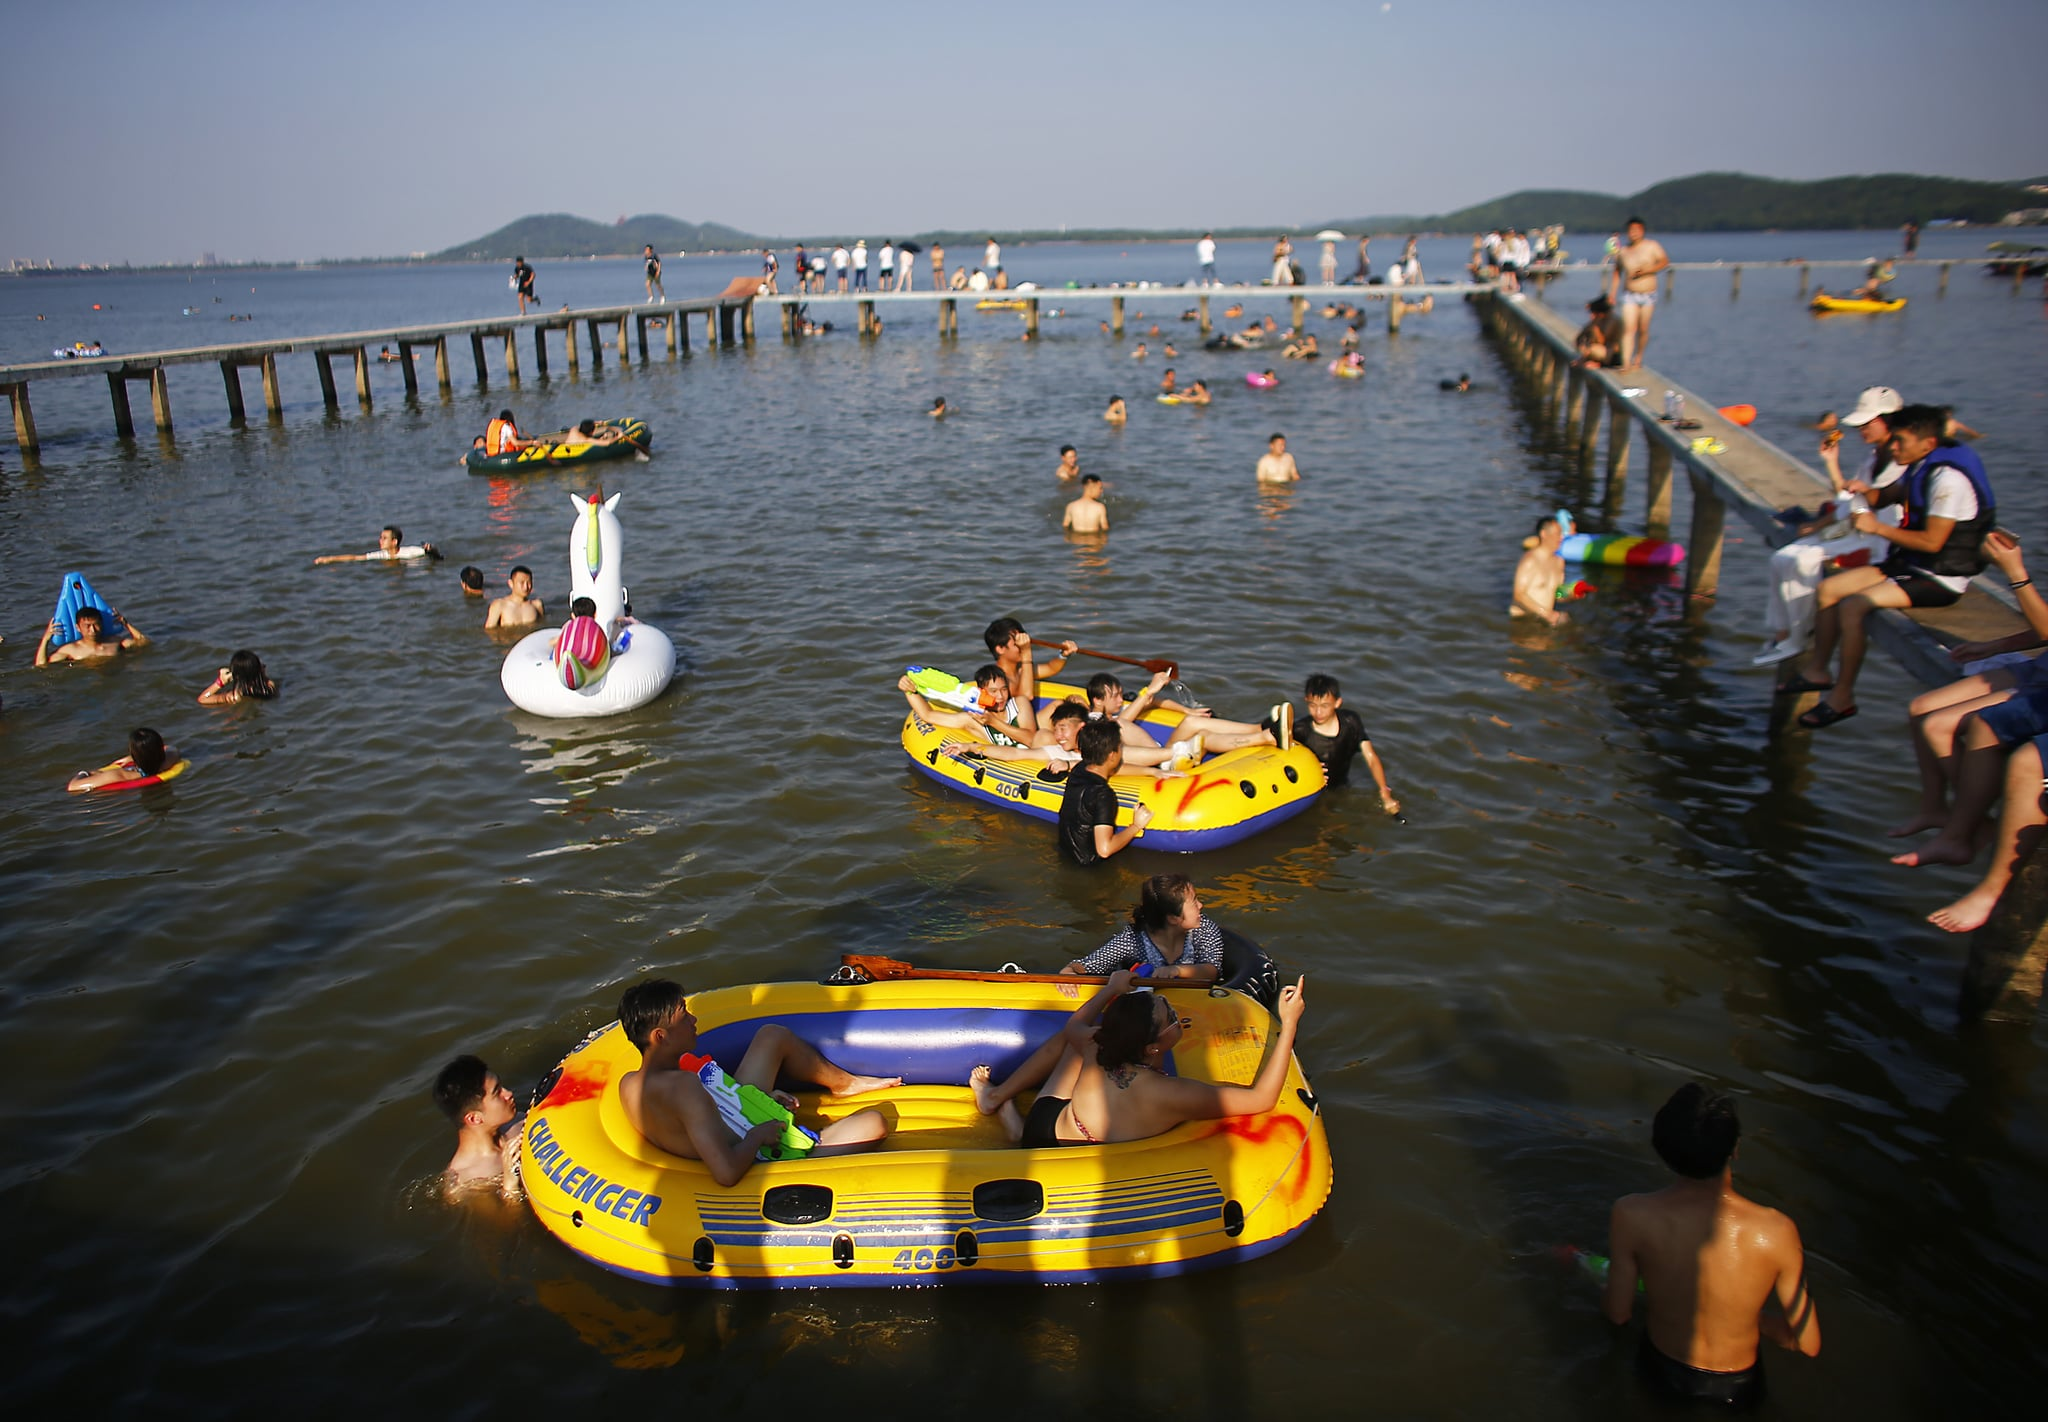 WUHAN, CHINA - JULY 24:  Residents enjoy the water in East Lake of Wuhan, Hubei province, China, July 25, 2016. This activity, which requires participants to ride their bikes and jump into the lake, attracts many extreme cycling enthusiasts from the city, local media reported. Picture taken July 18, 2015 on July 24, 2016 in Wuhan, China.  (Photo by Wang He/Getty Images)